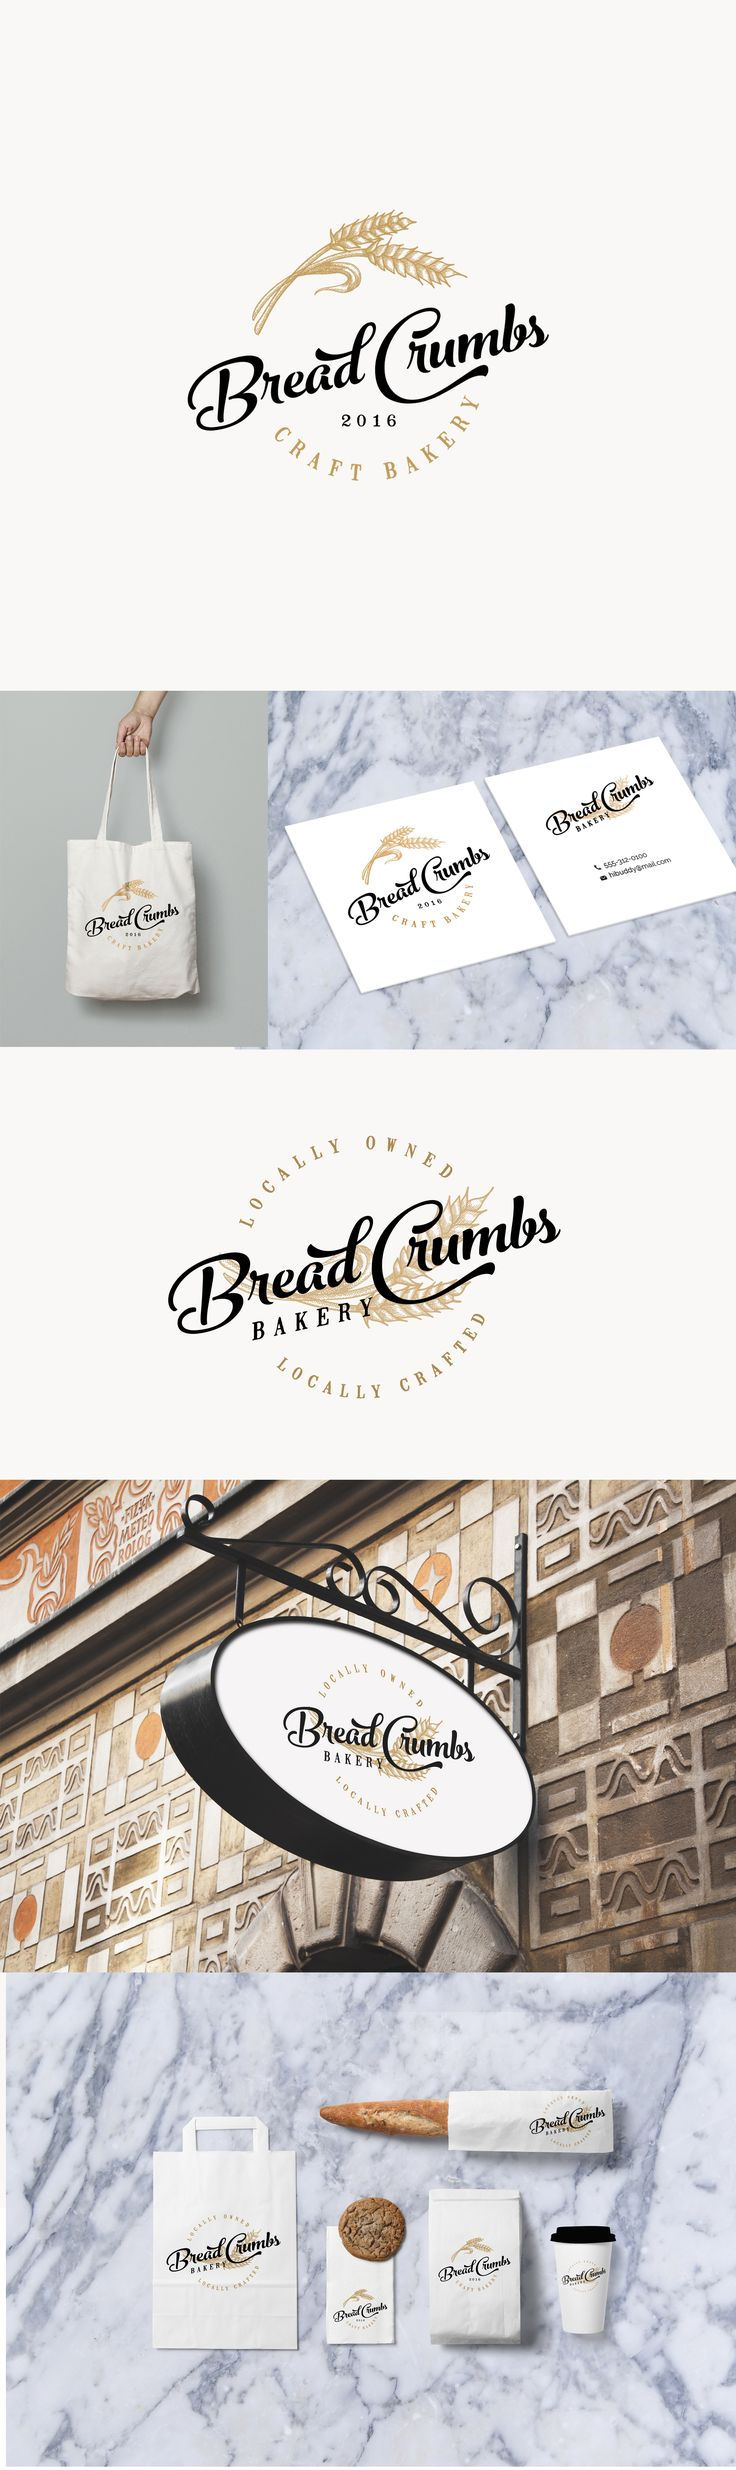 https://99designs.com/logo-design/contests/design-modern-hip-bread-bakery-logo-670240/entries/55